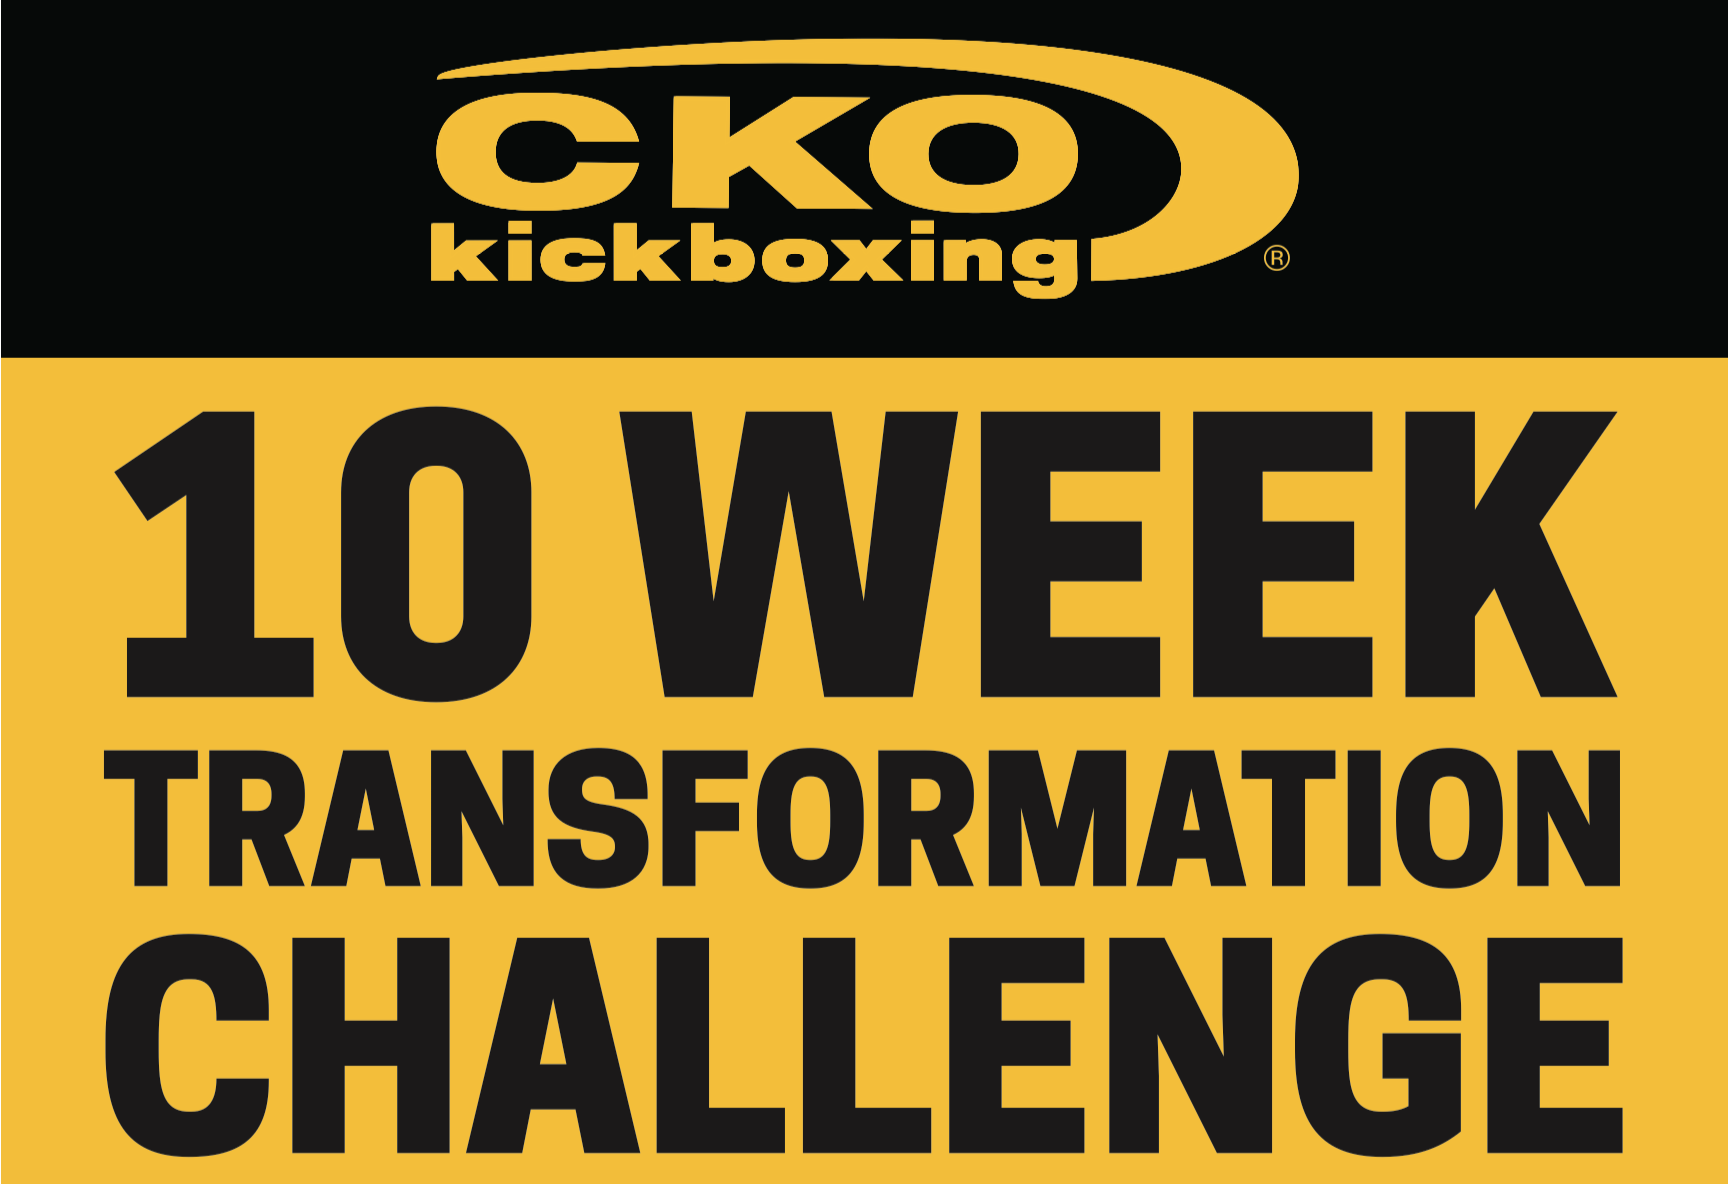 CKO 10 Week Transformation Challenge.png